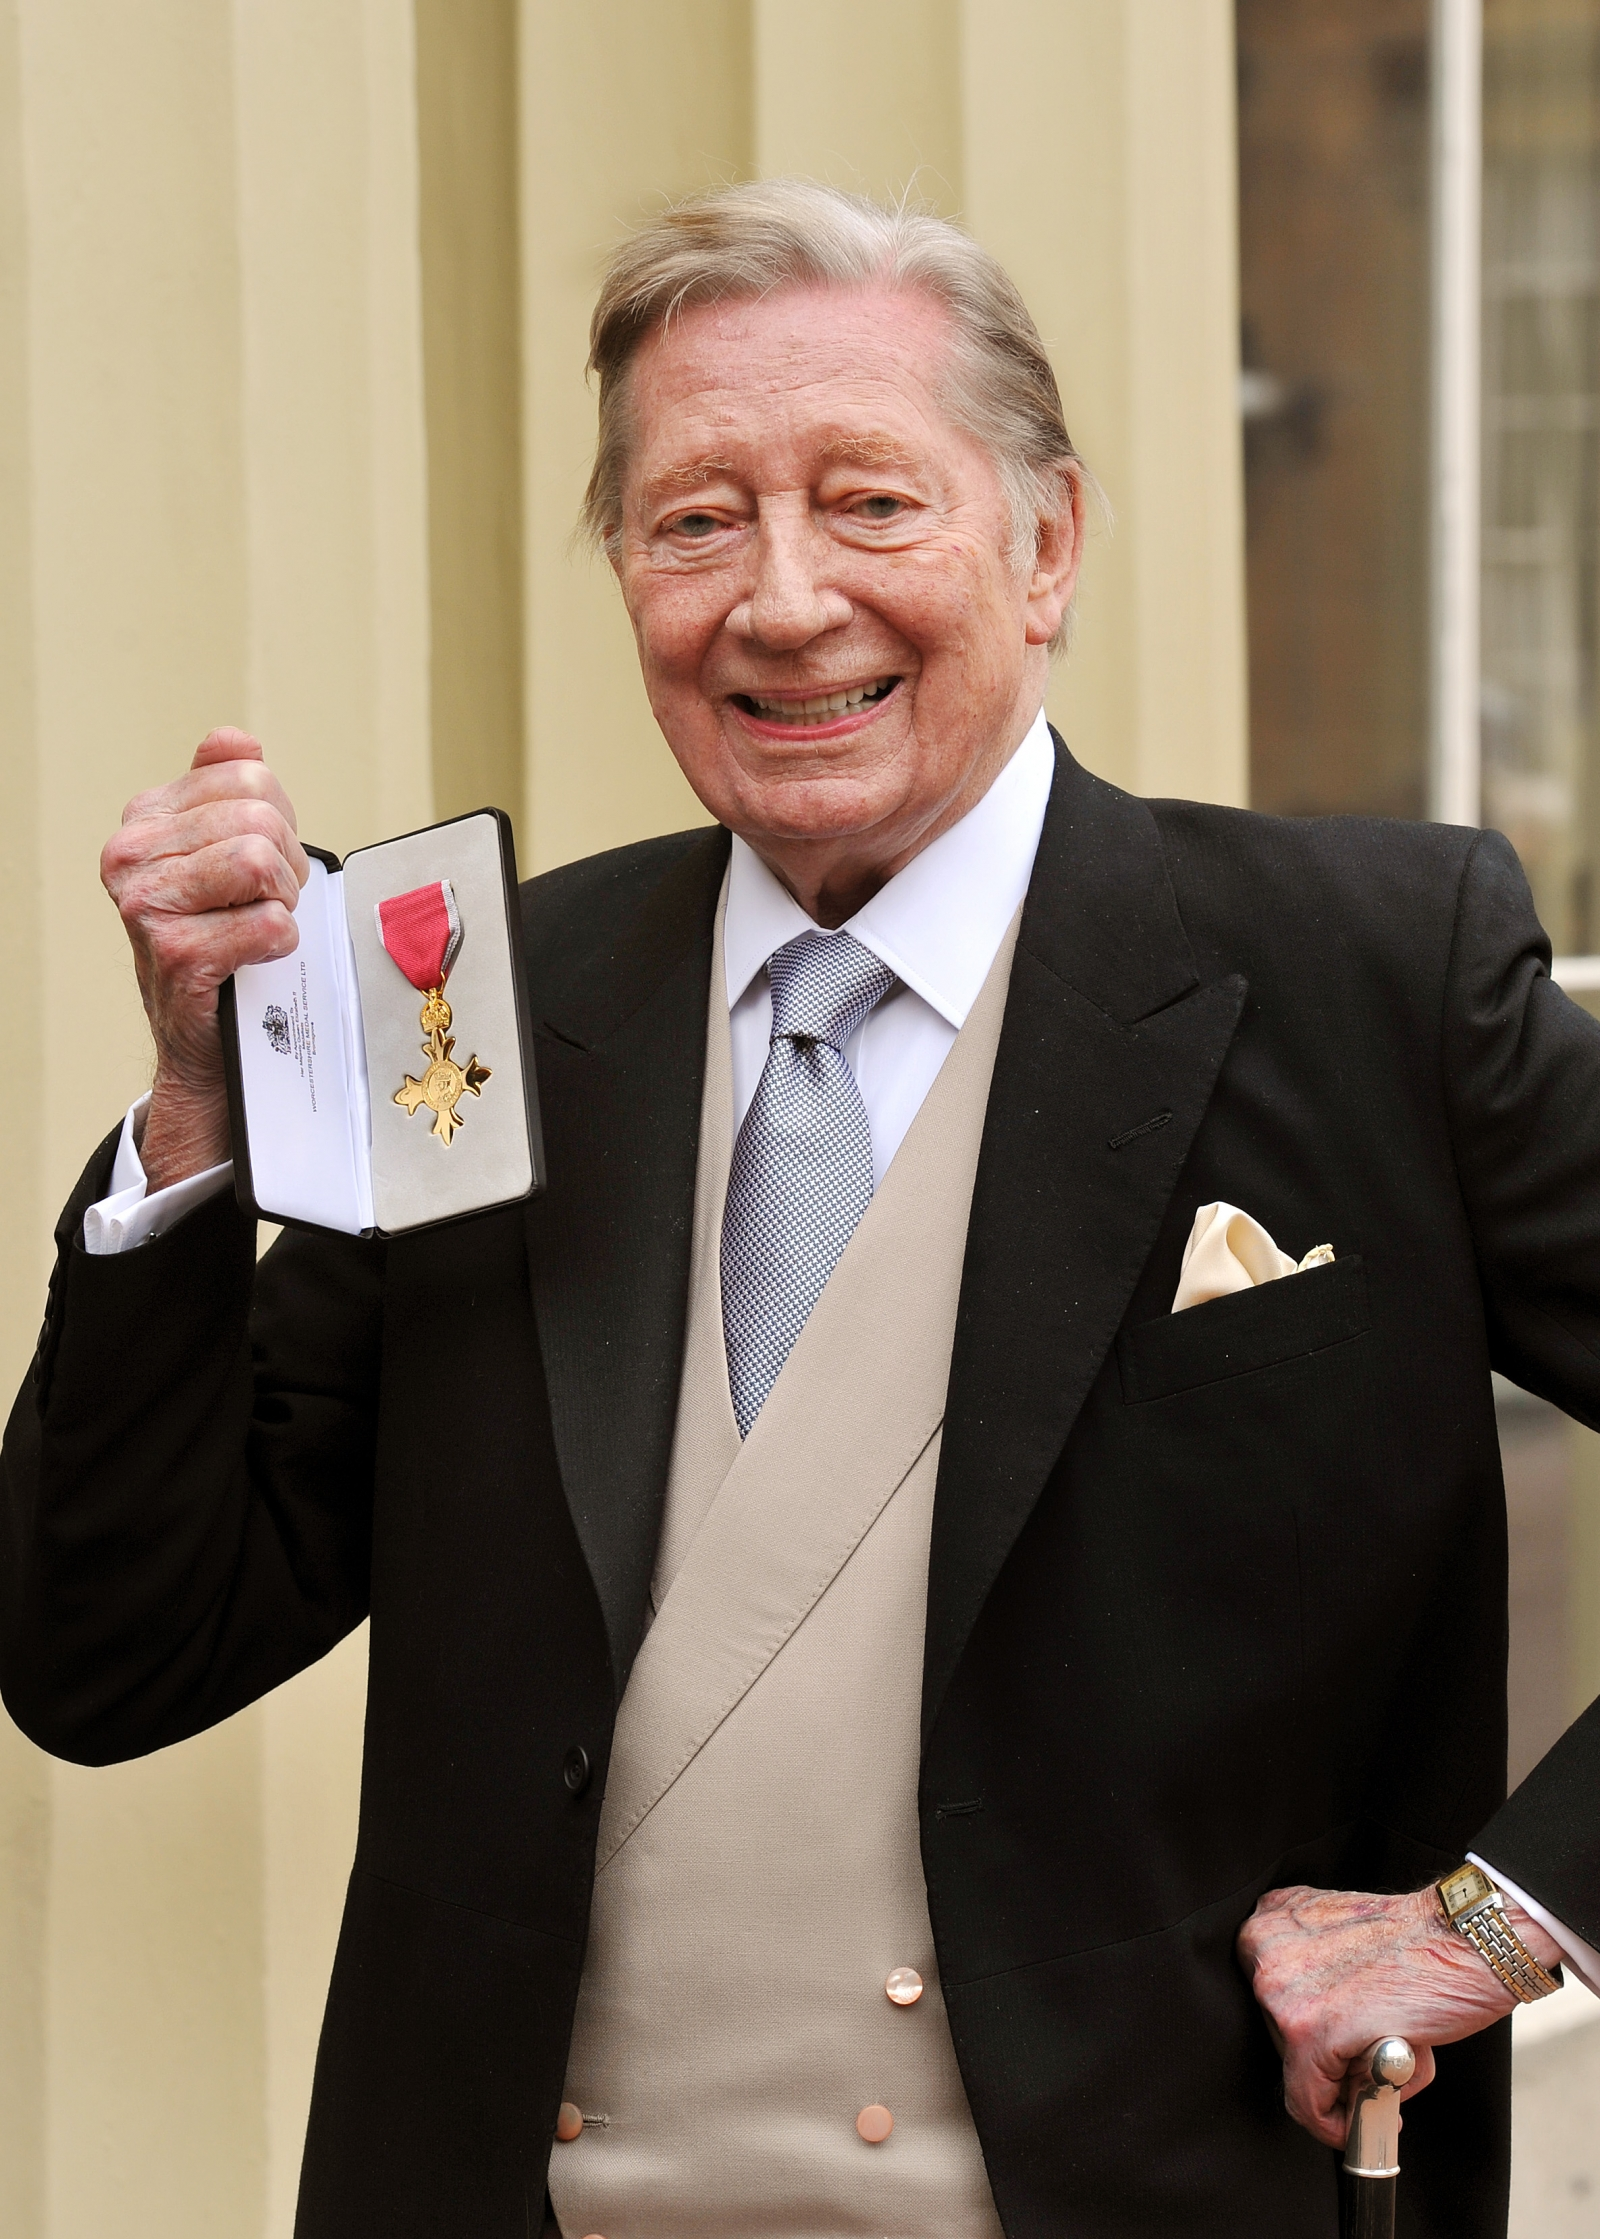 Jeremy Lloyd holds his Officer of the British Empire (OBE) medal after it was presented to him by Queen Elizabeth II at the Investiture Ceremony at Buckingham Palace on February 13, 2012